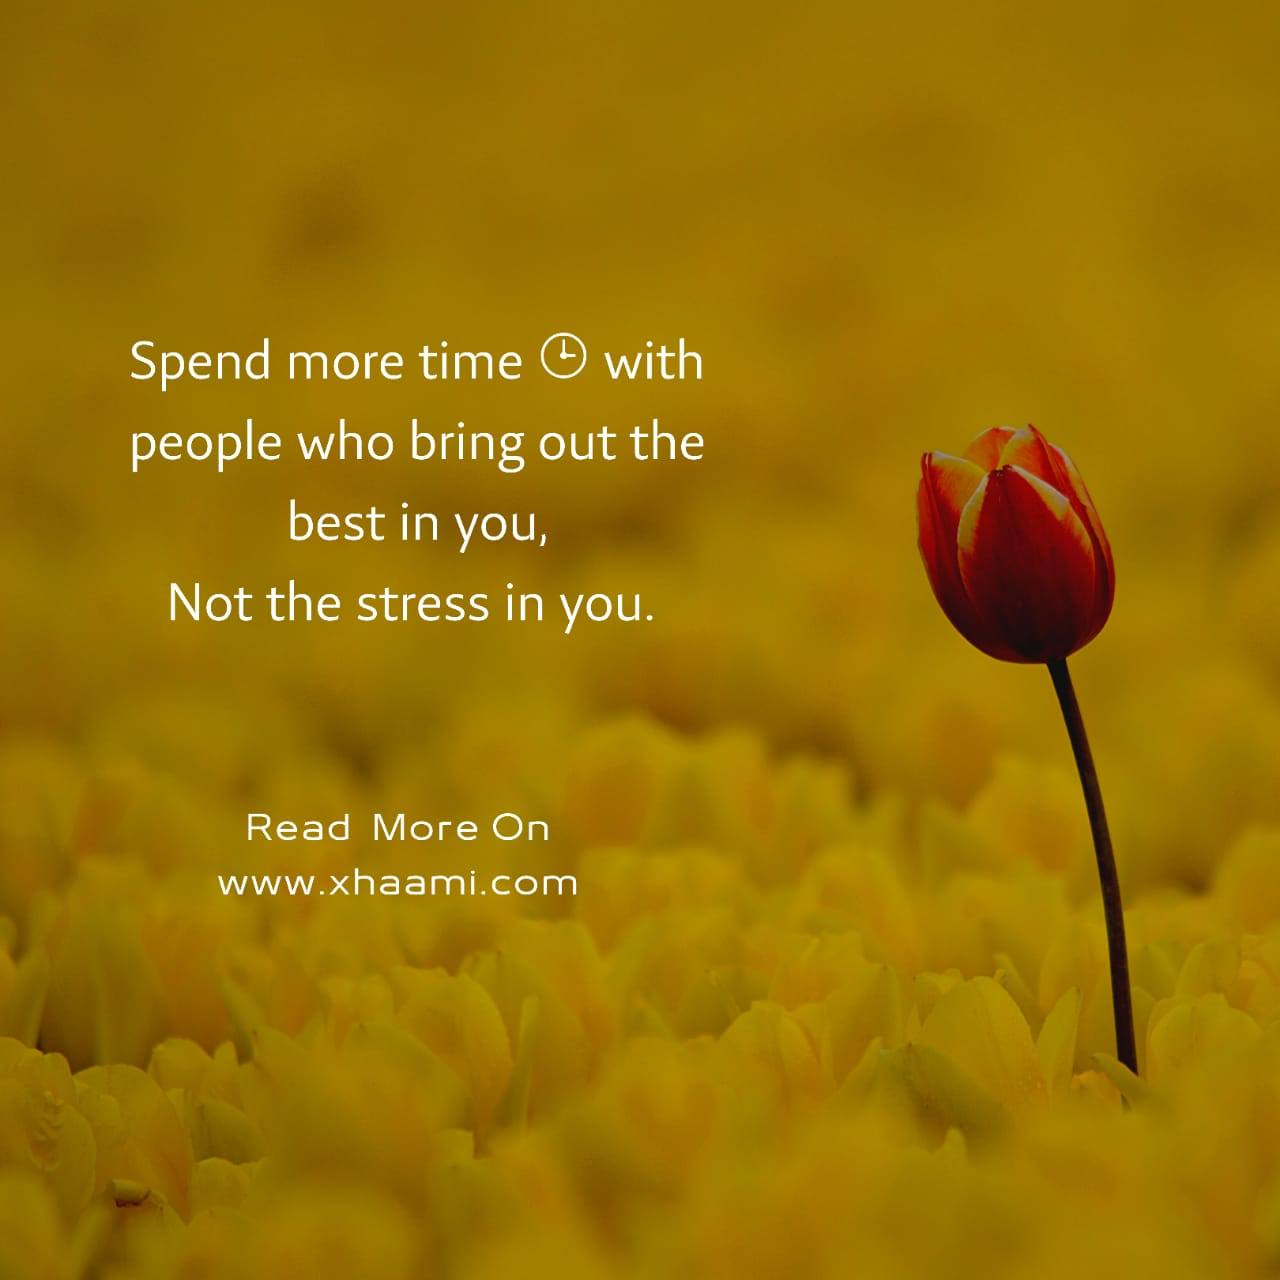 Spend more time  with people who bring out the best in you    There are many people around us but some people are special this quote is written for those who make our life more special. When we talk with them we feel delighted and when we are sad they bring smile on our face.  If you have such persons in your life then must share this quote link to them so they can know that what you feel about them.       Quote text: Spend more time ⌚ with people who bring out the best in you, Not the stress in you.